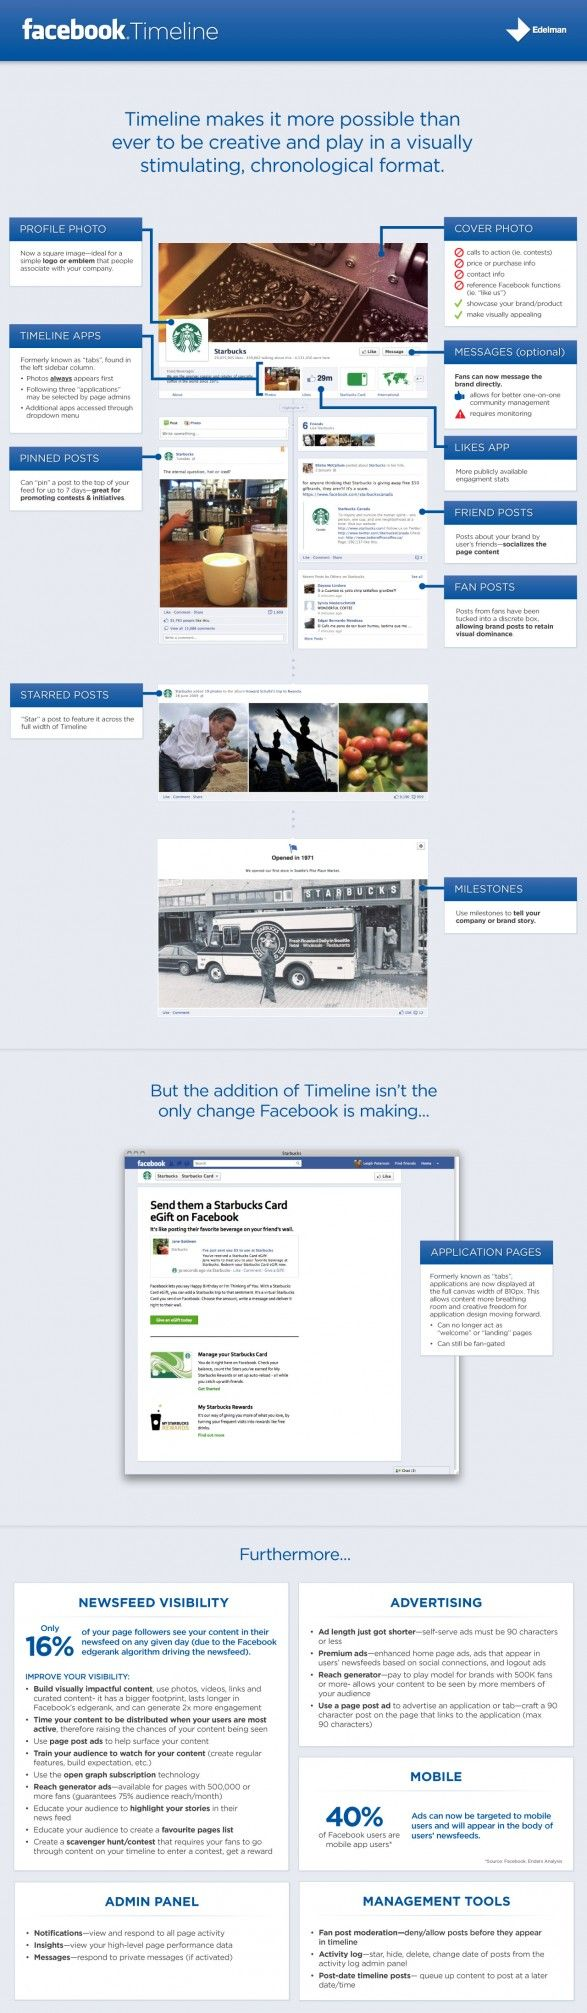 Facebook timeline, what's great about the new features for your brand.